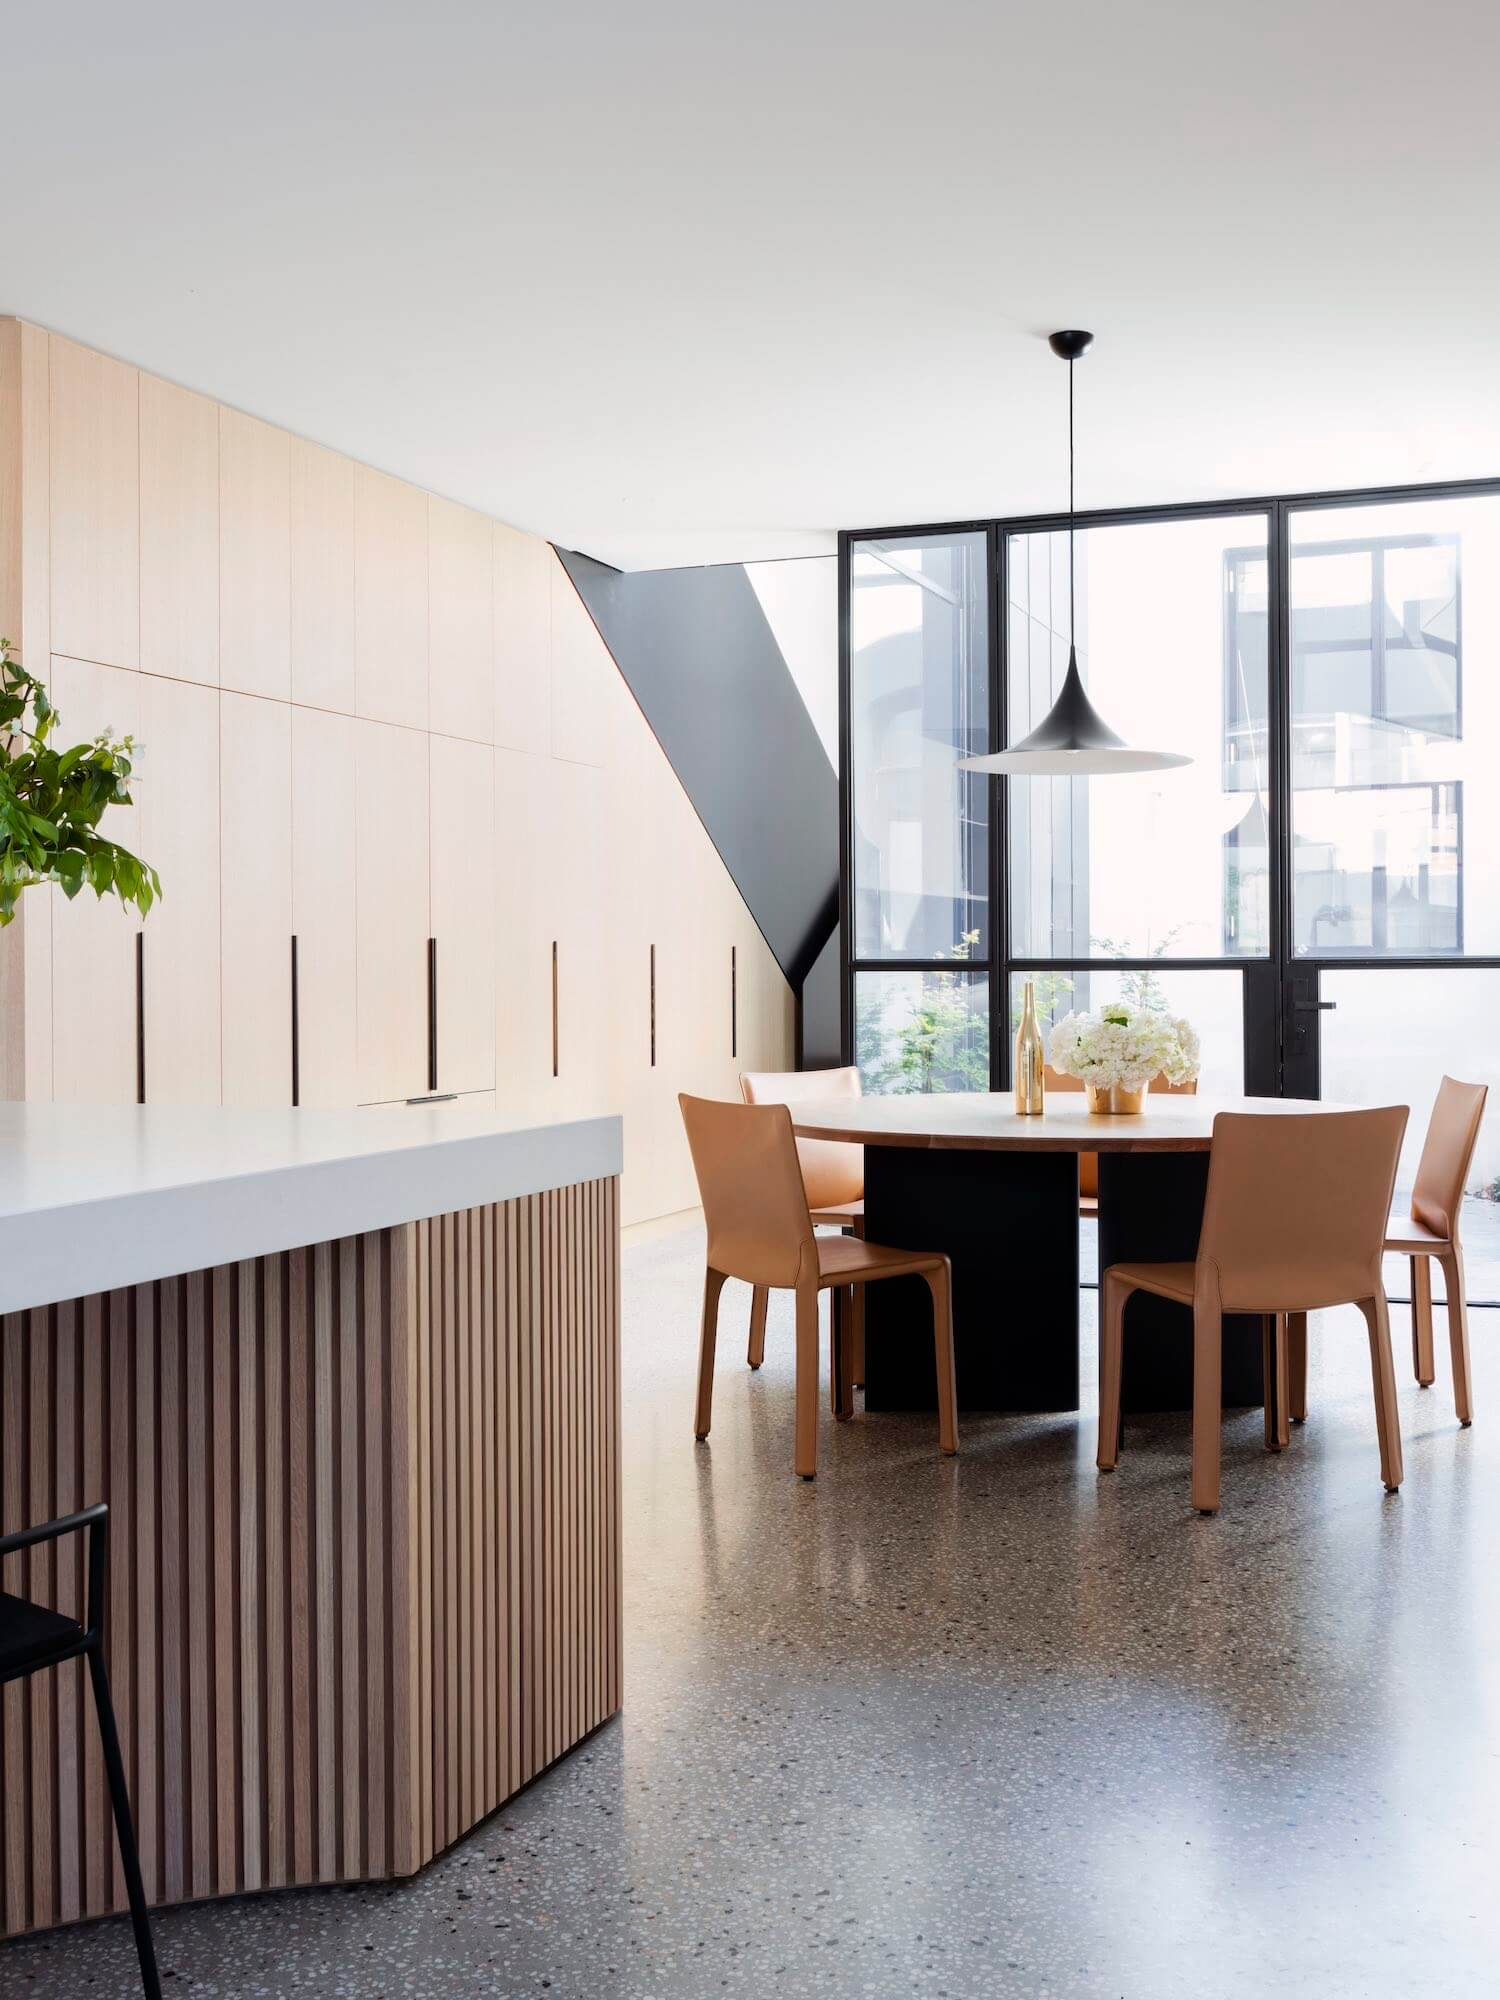 Est living port melbourne house pandolfini architects 12